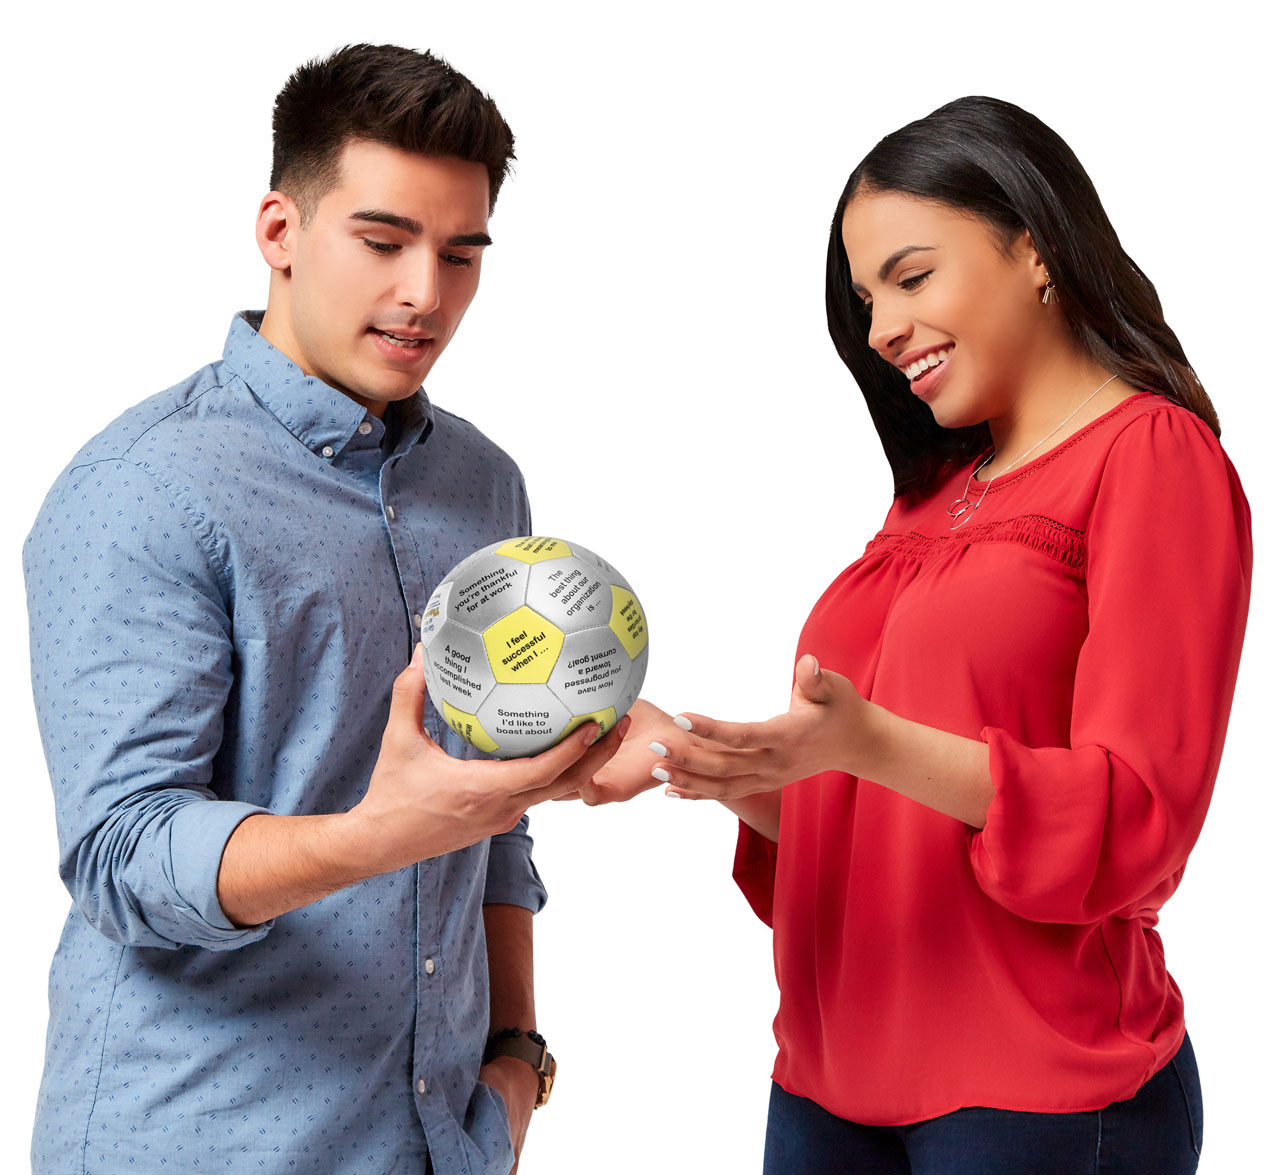 Man and woman discussing prompt on Get Happy at Work Thumball